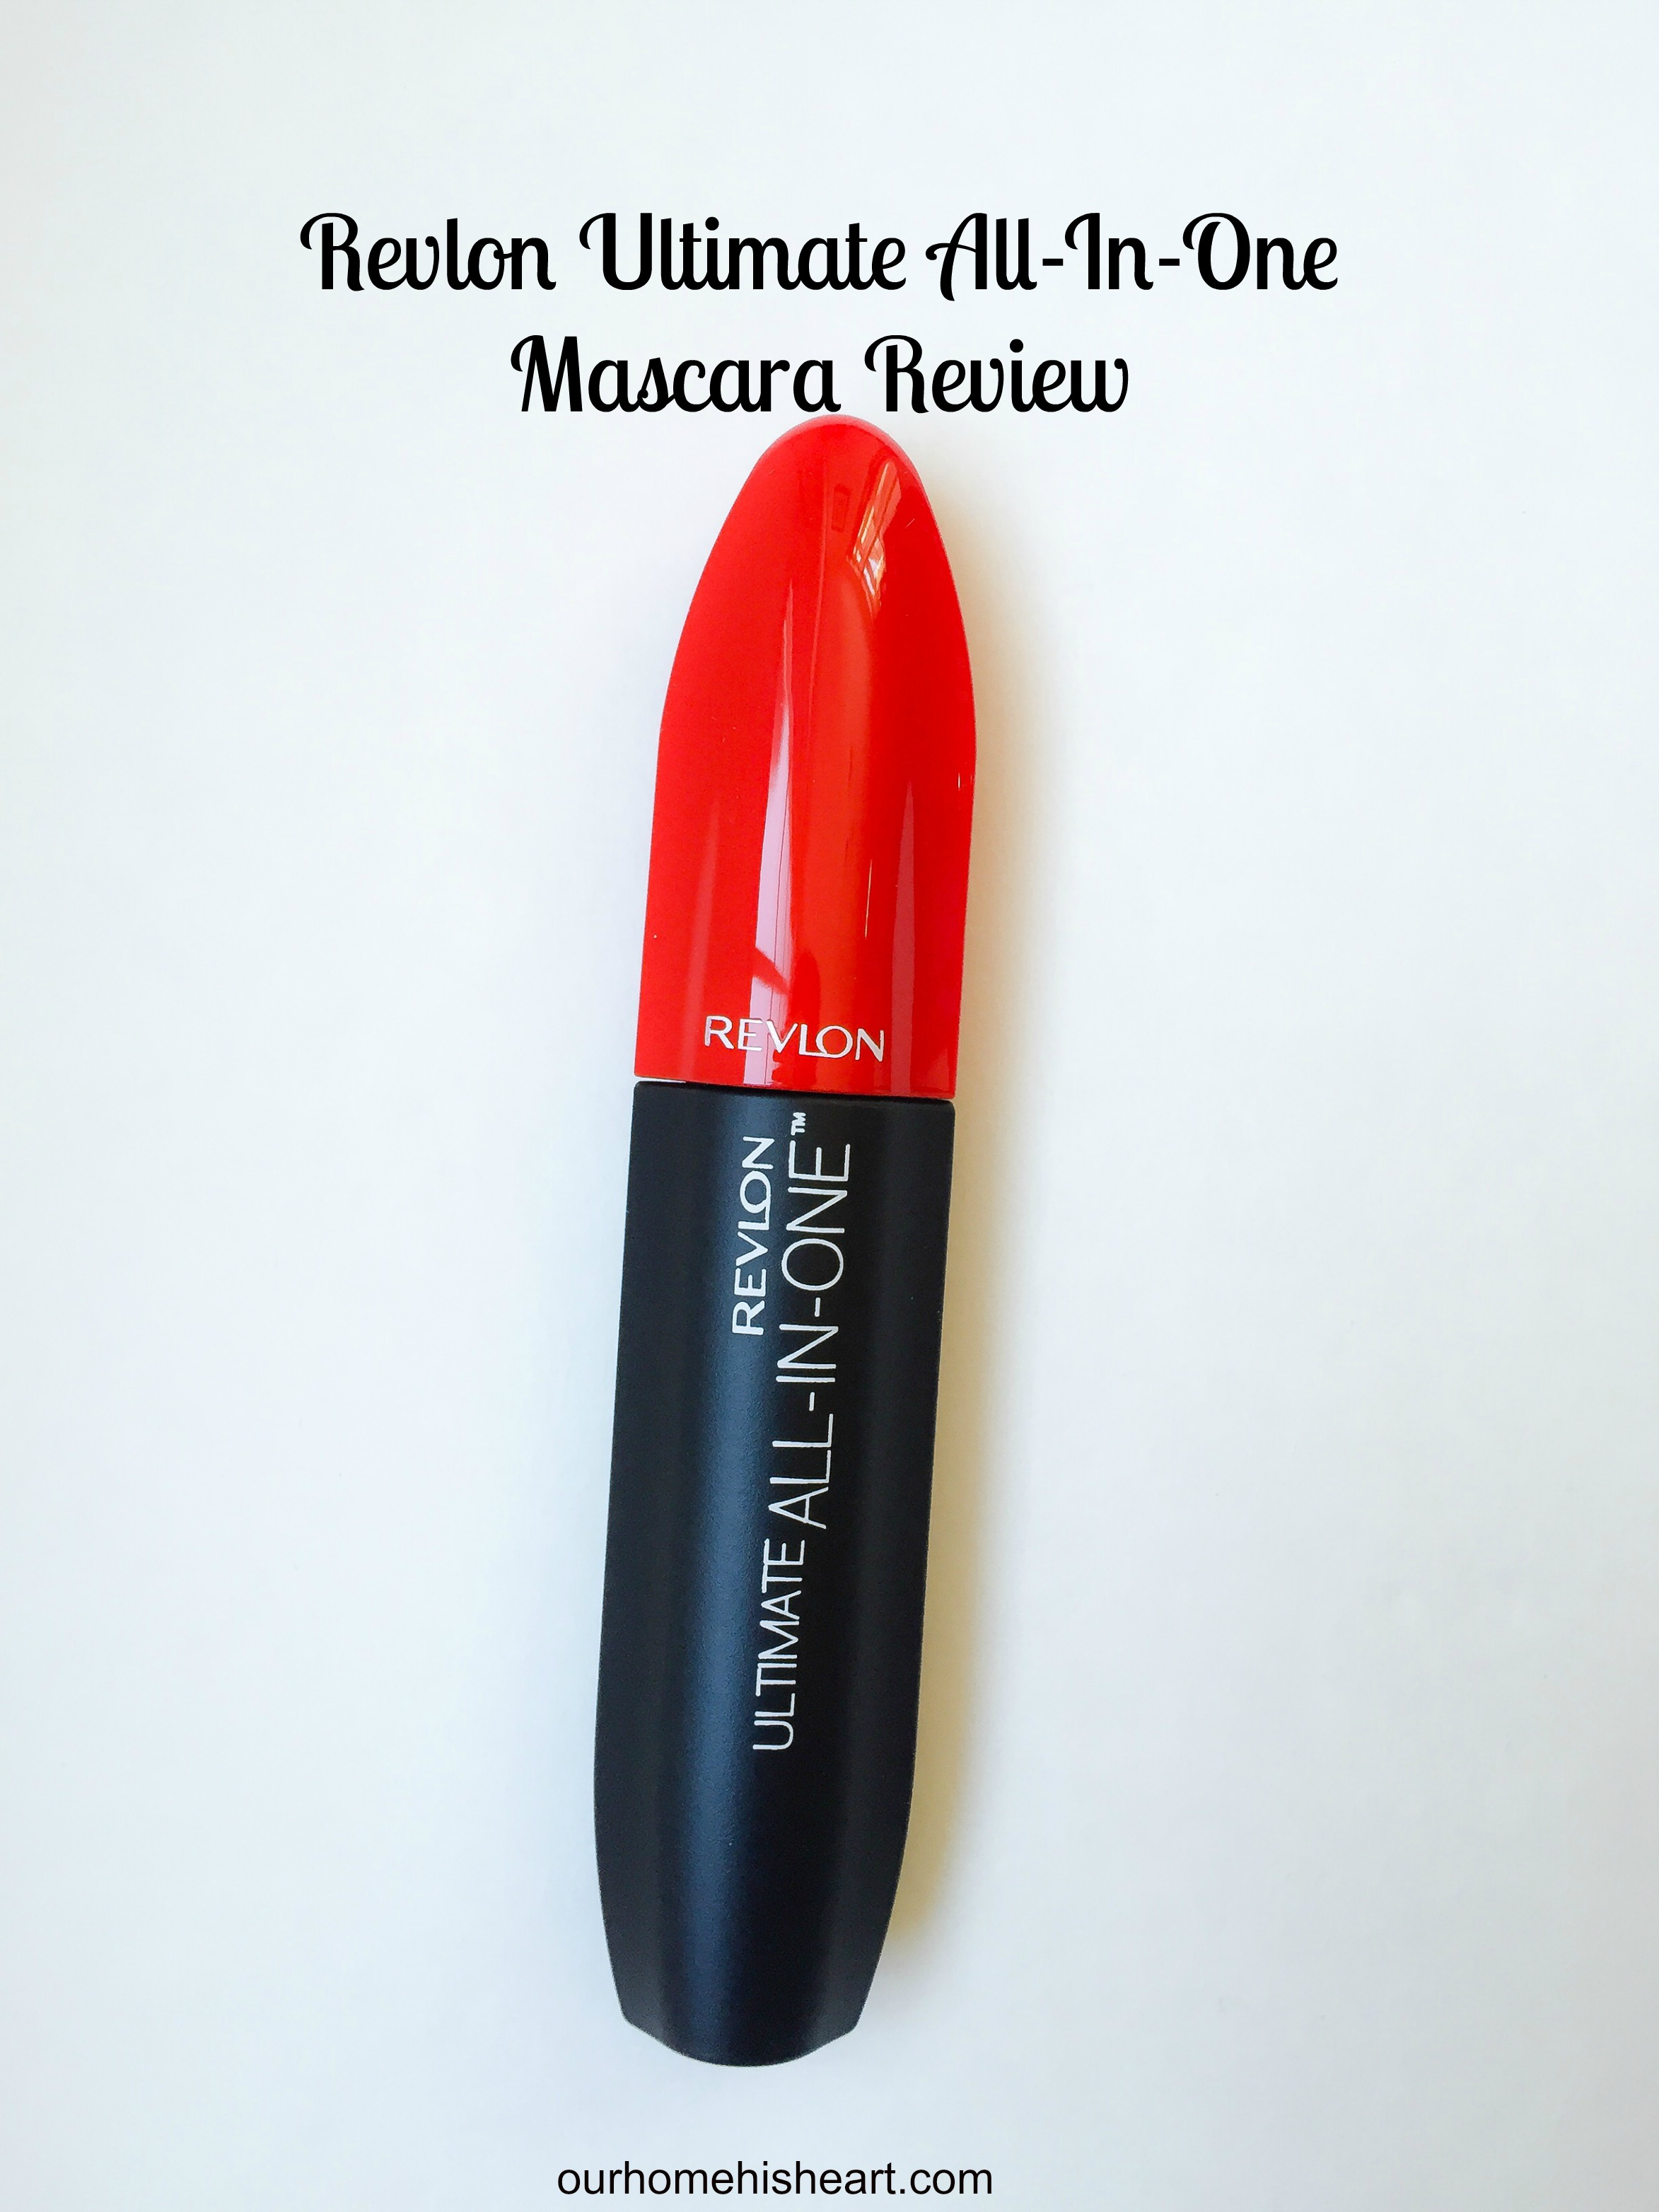 Revlon Ultimate All-In-One Mascara Review1